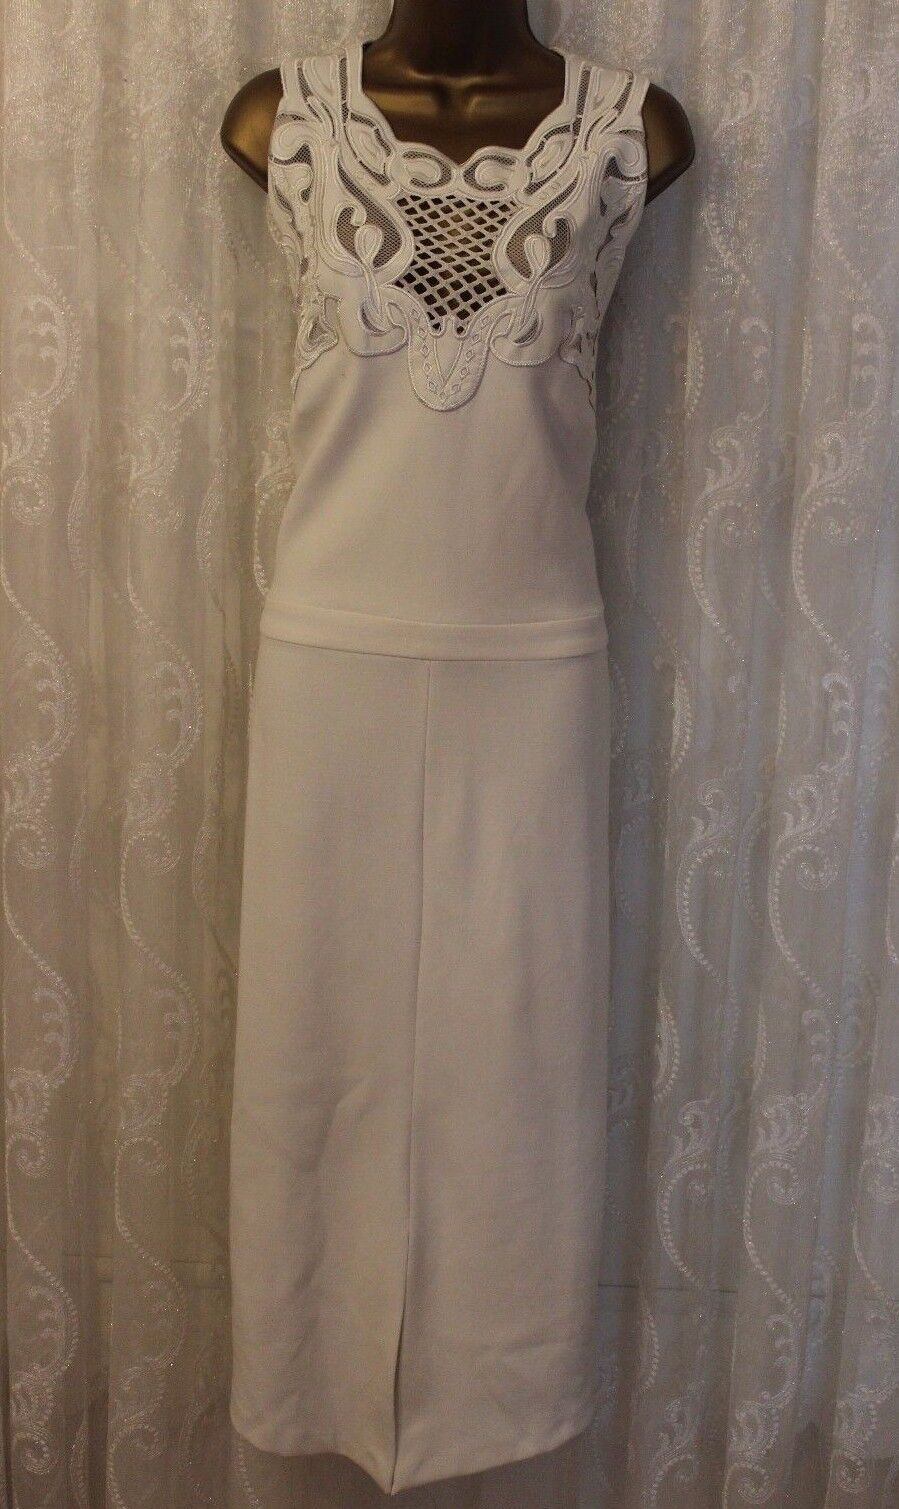 ASOS Lace Embroidery Mesh Scuba Pencil Ivory Midi Wedding Party Dress 8 to 18